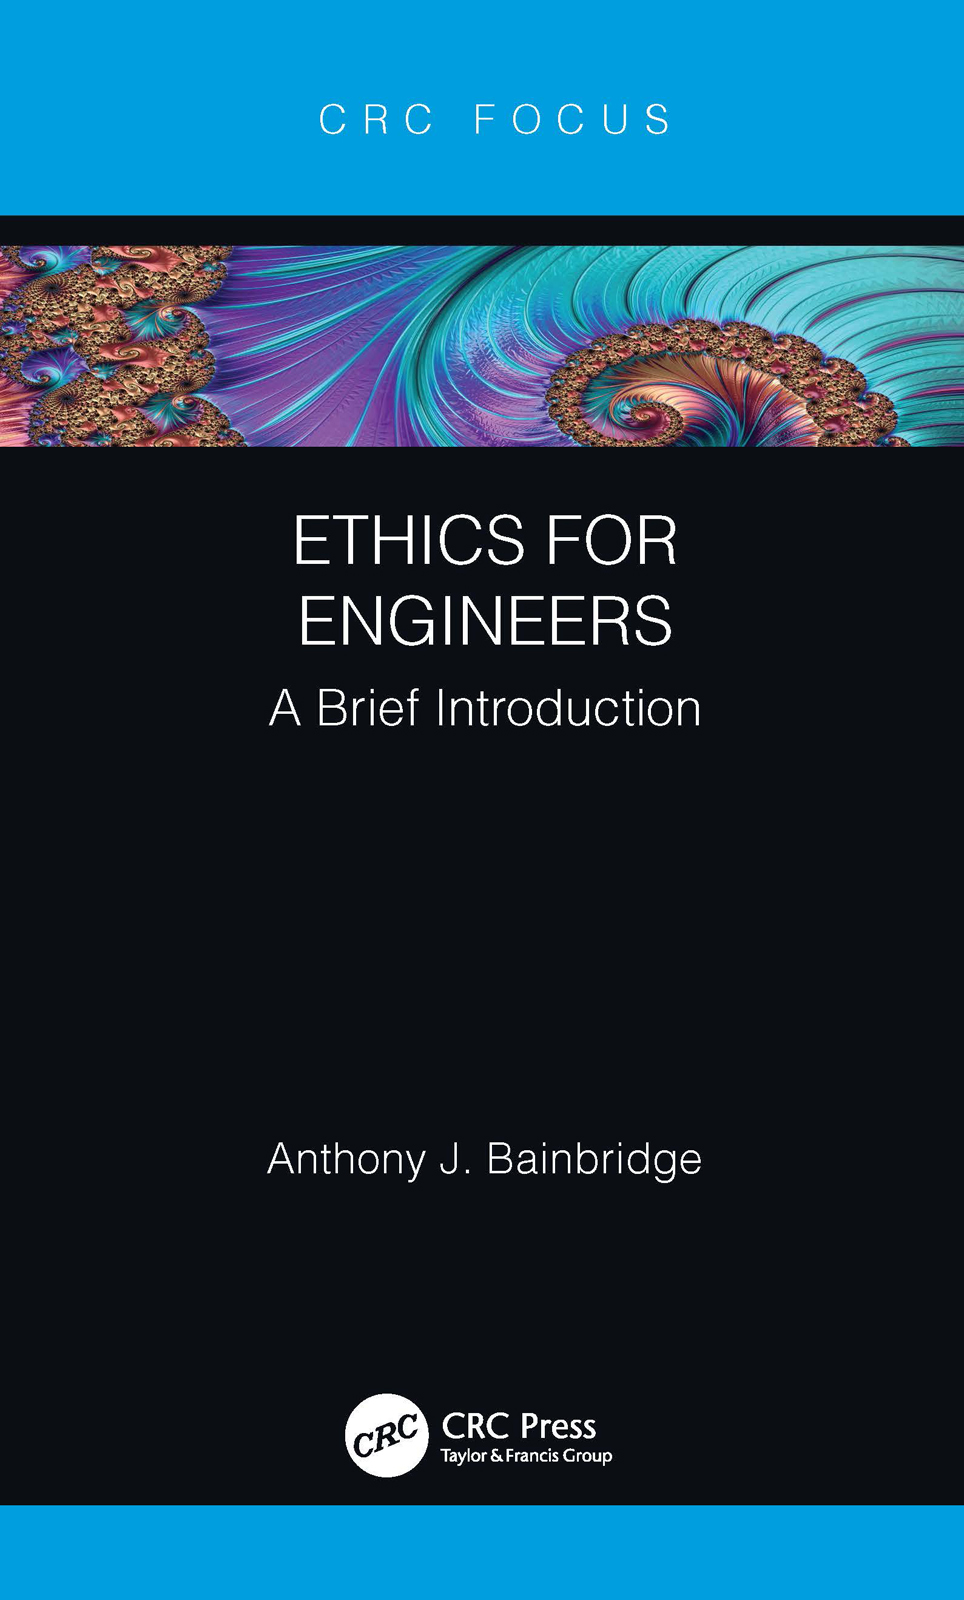 Ethics for Engineers: A Brief Introduction